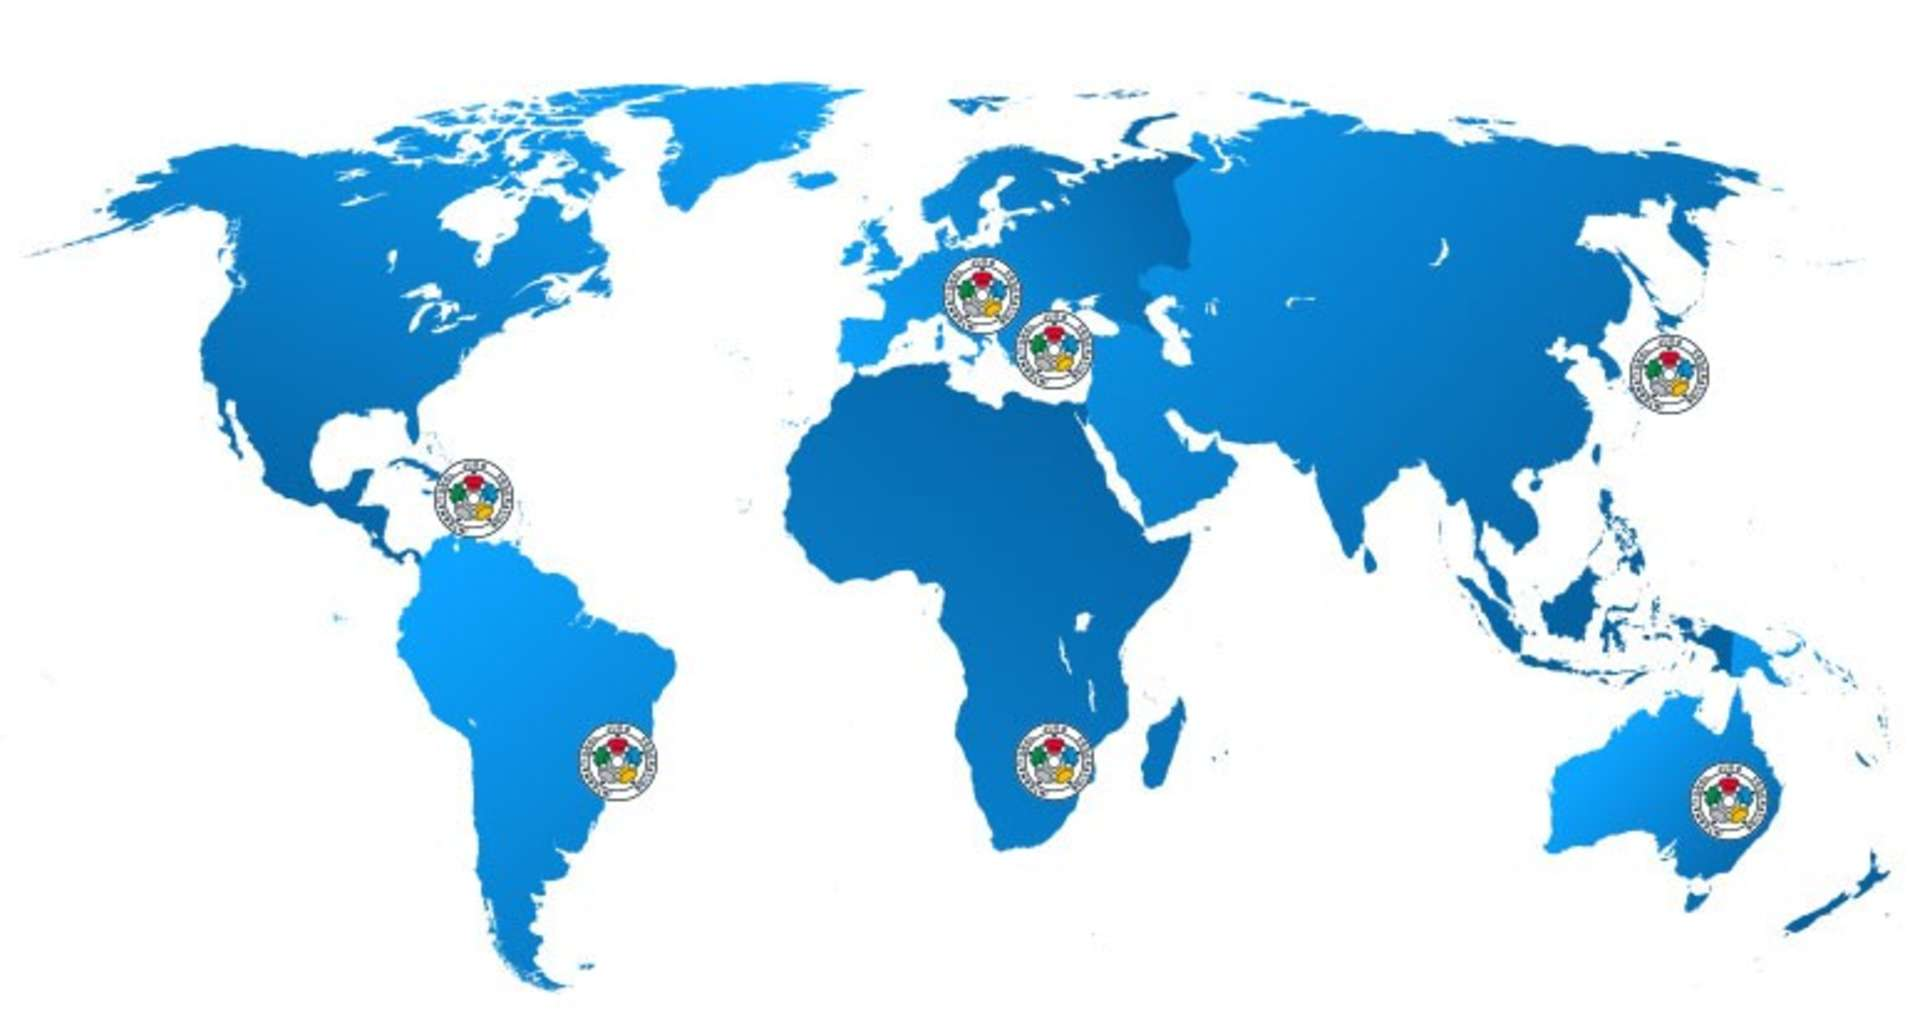 Takushin fan takushinfan twitter firebombs usa restricted data diagram collection world map for japan download more maps map of japan and usa gumiabroncs Choice Image